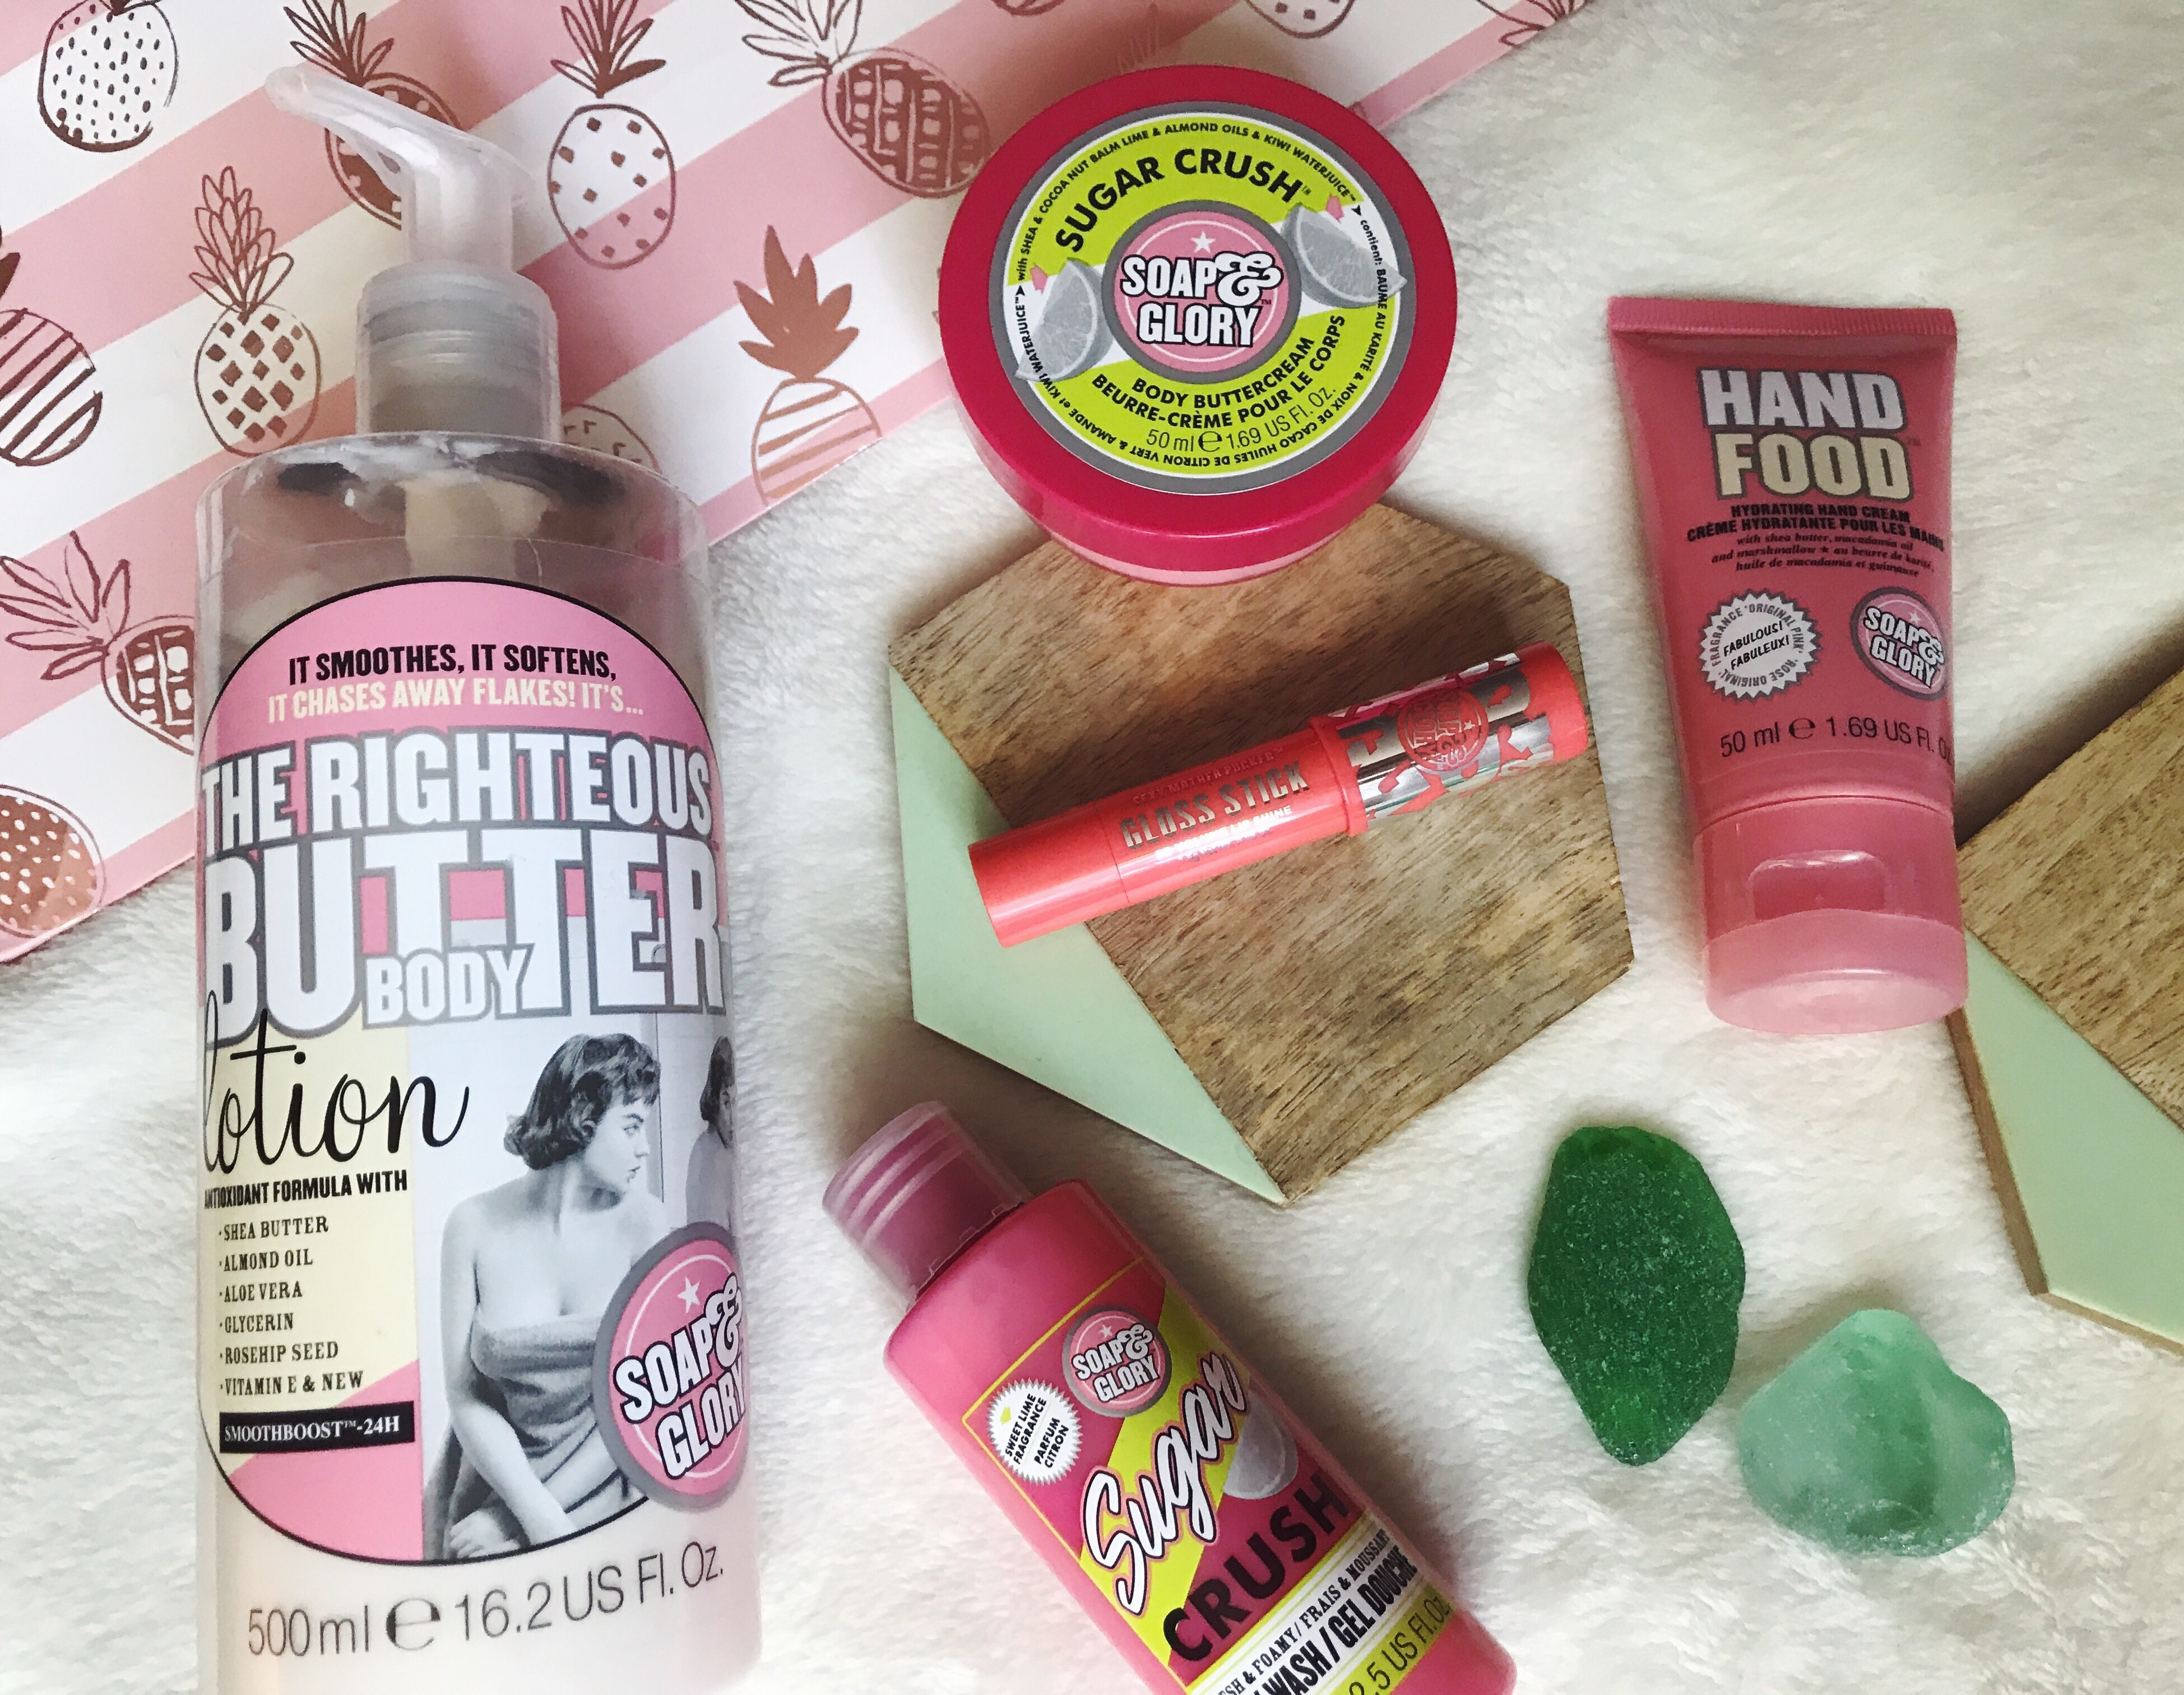 trying soap & glory